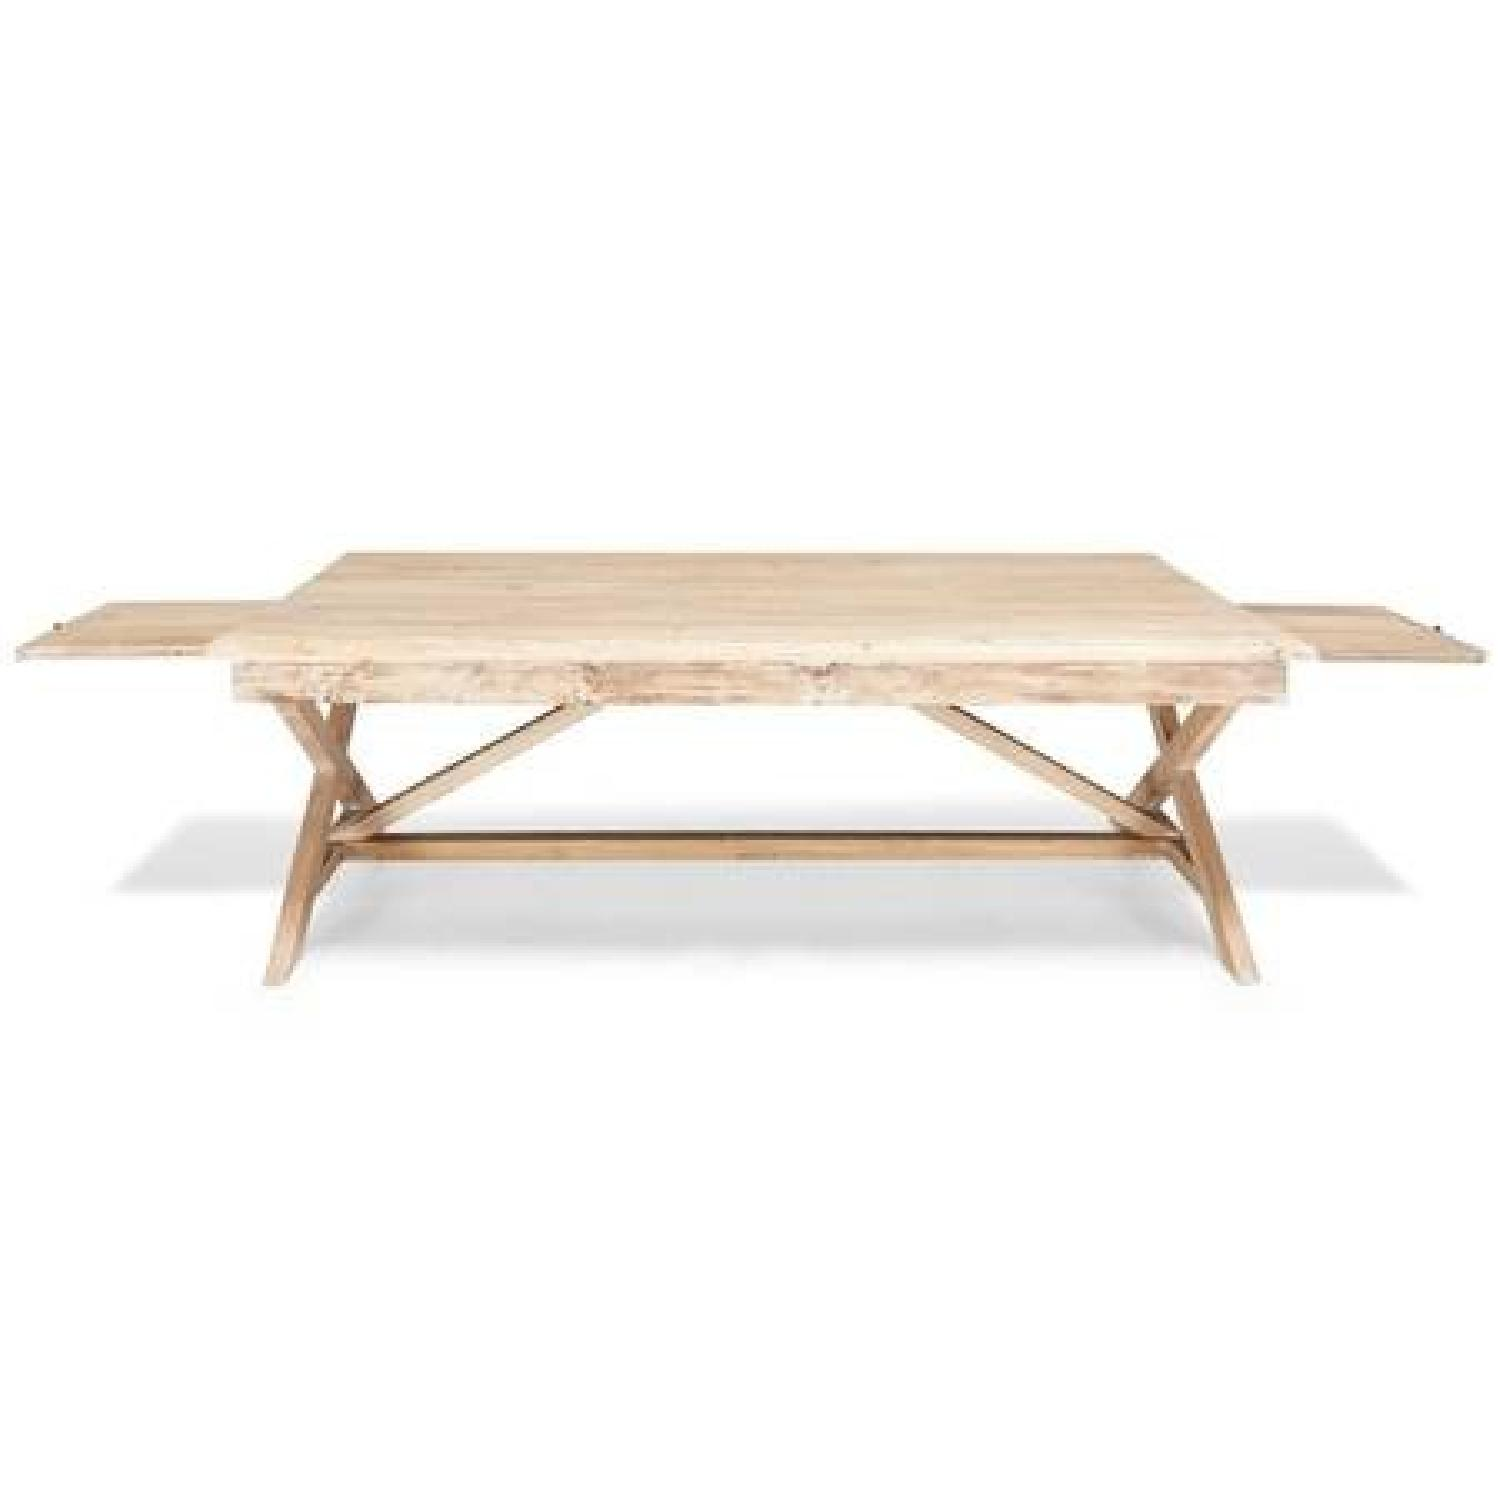 ABC Carpet & Home Handcrafted Coffee Table - image-8